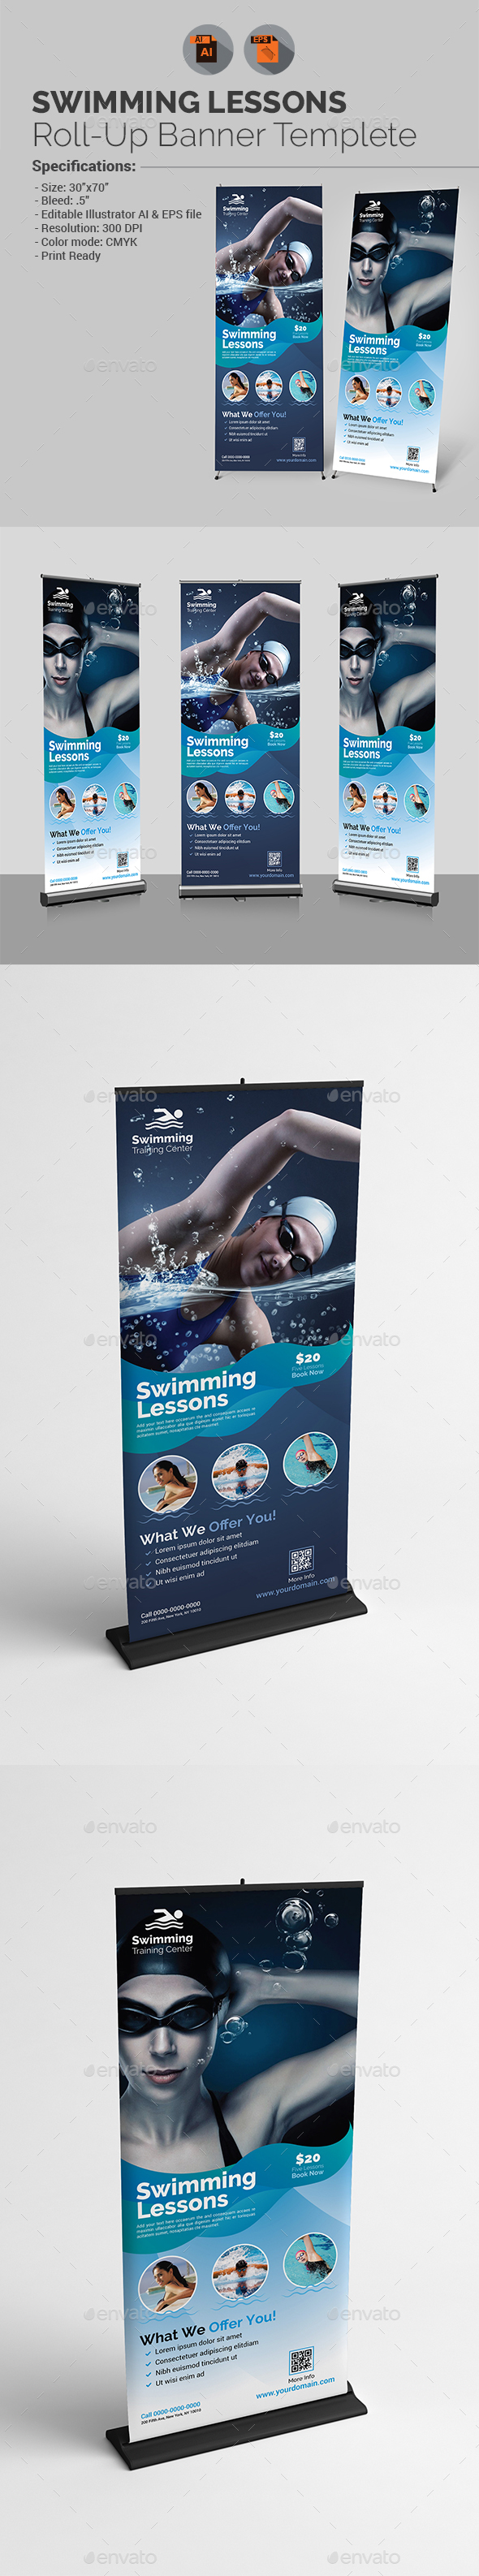 Swimming Lessons Roll Up Banner Template Kakemono